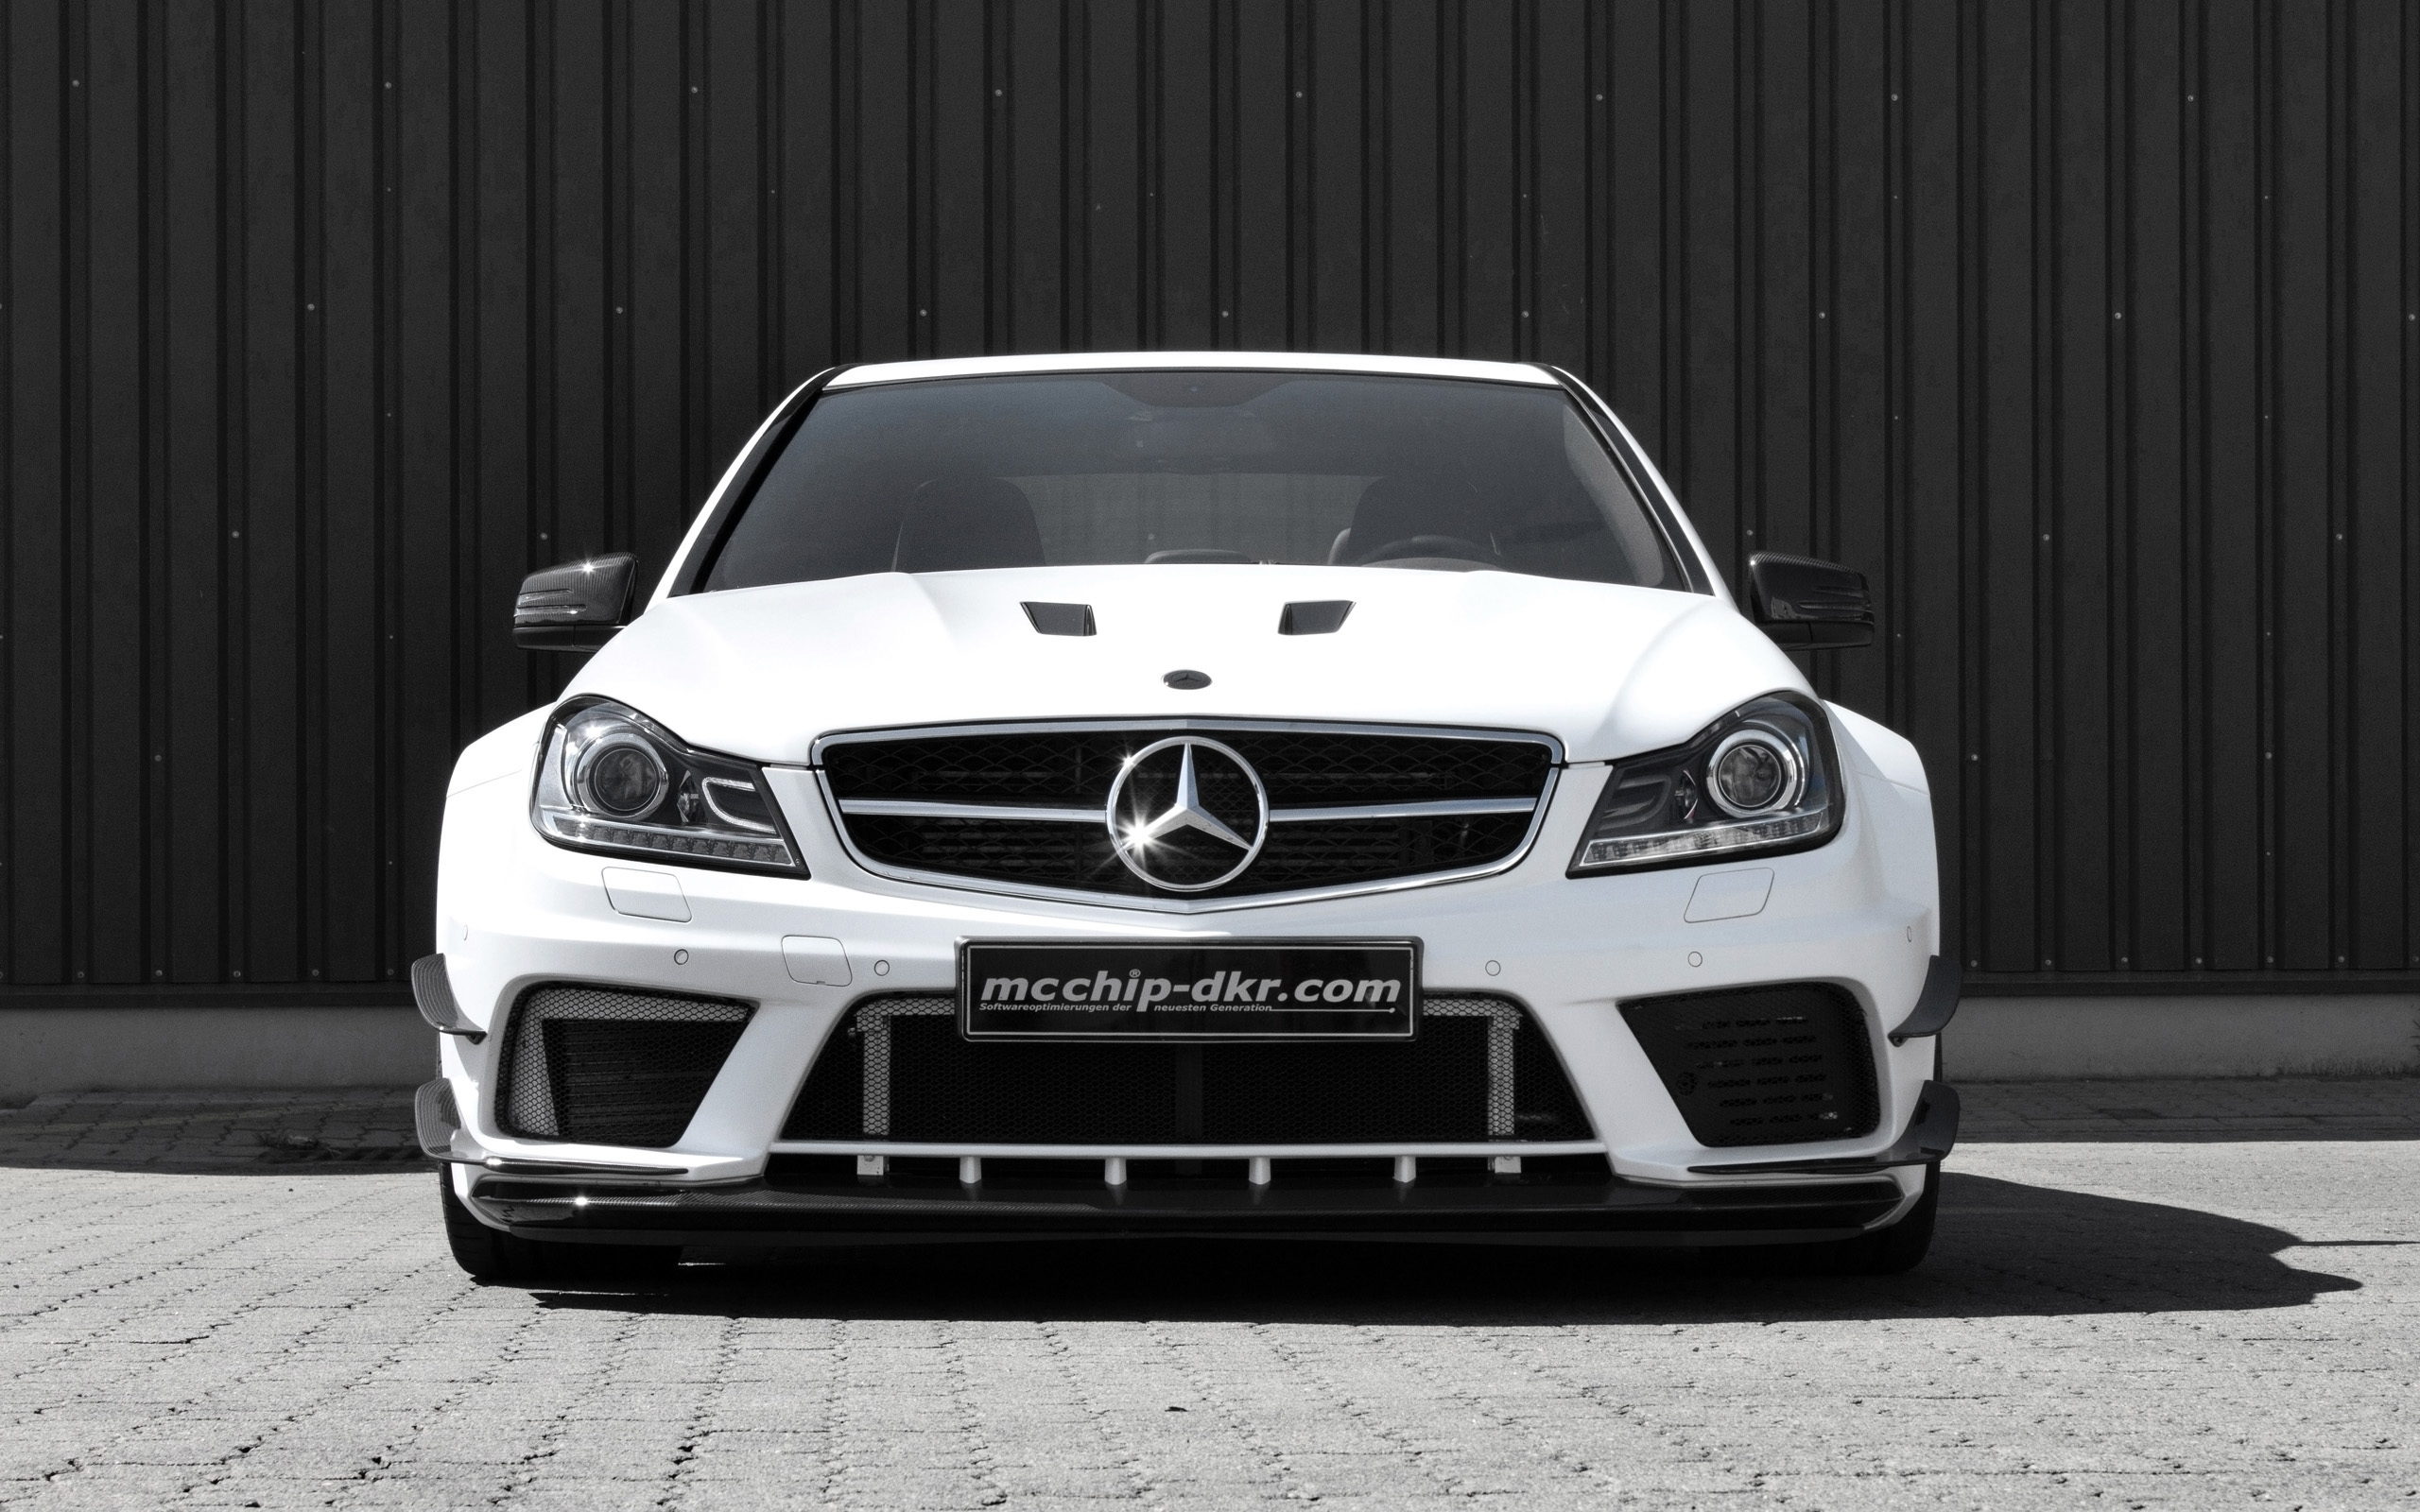 2014 mercedes benz c63 amg mc8xx by mcchip dkr wallpaper for Mercedes benz c63 2014